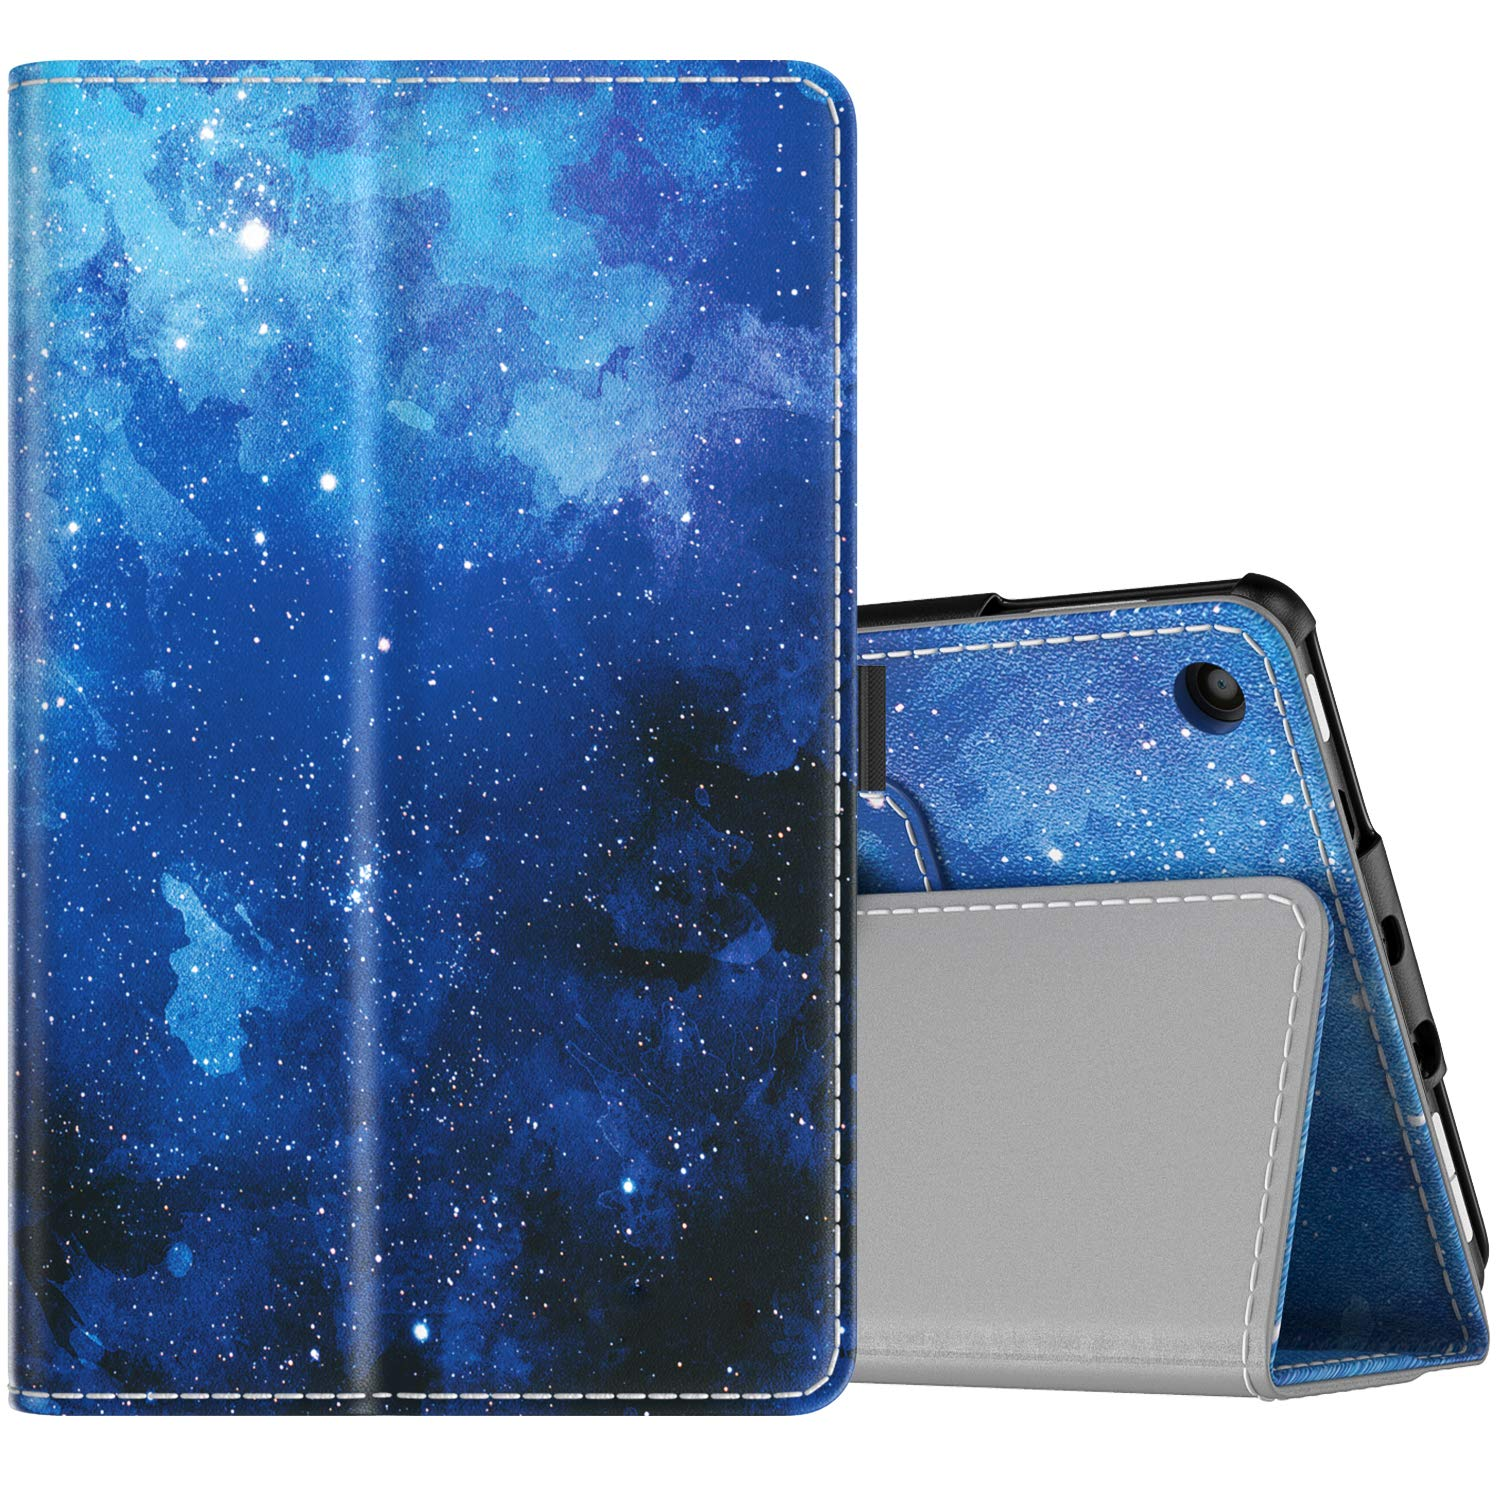 TiMOVO Case Fits All-New Fire 7 Tablet (9th Generation, 2019 Release) - Lightweight Smart Shell Slim Folding Cover Case with Auto Wake/Sleep Fit Amazon Fire 7 Tablet - Blue Star